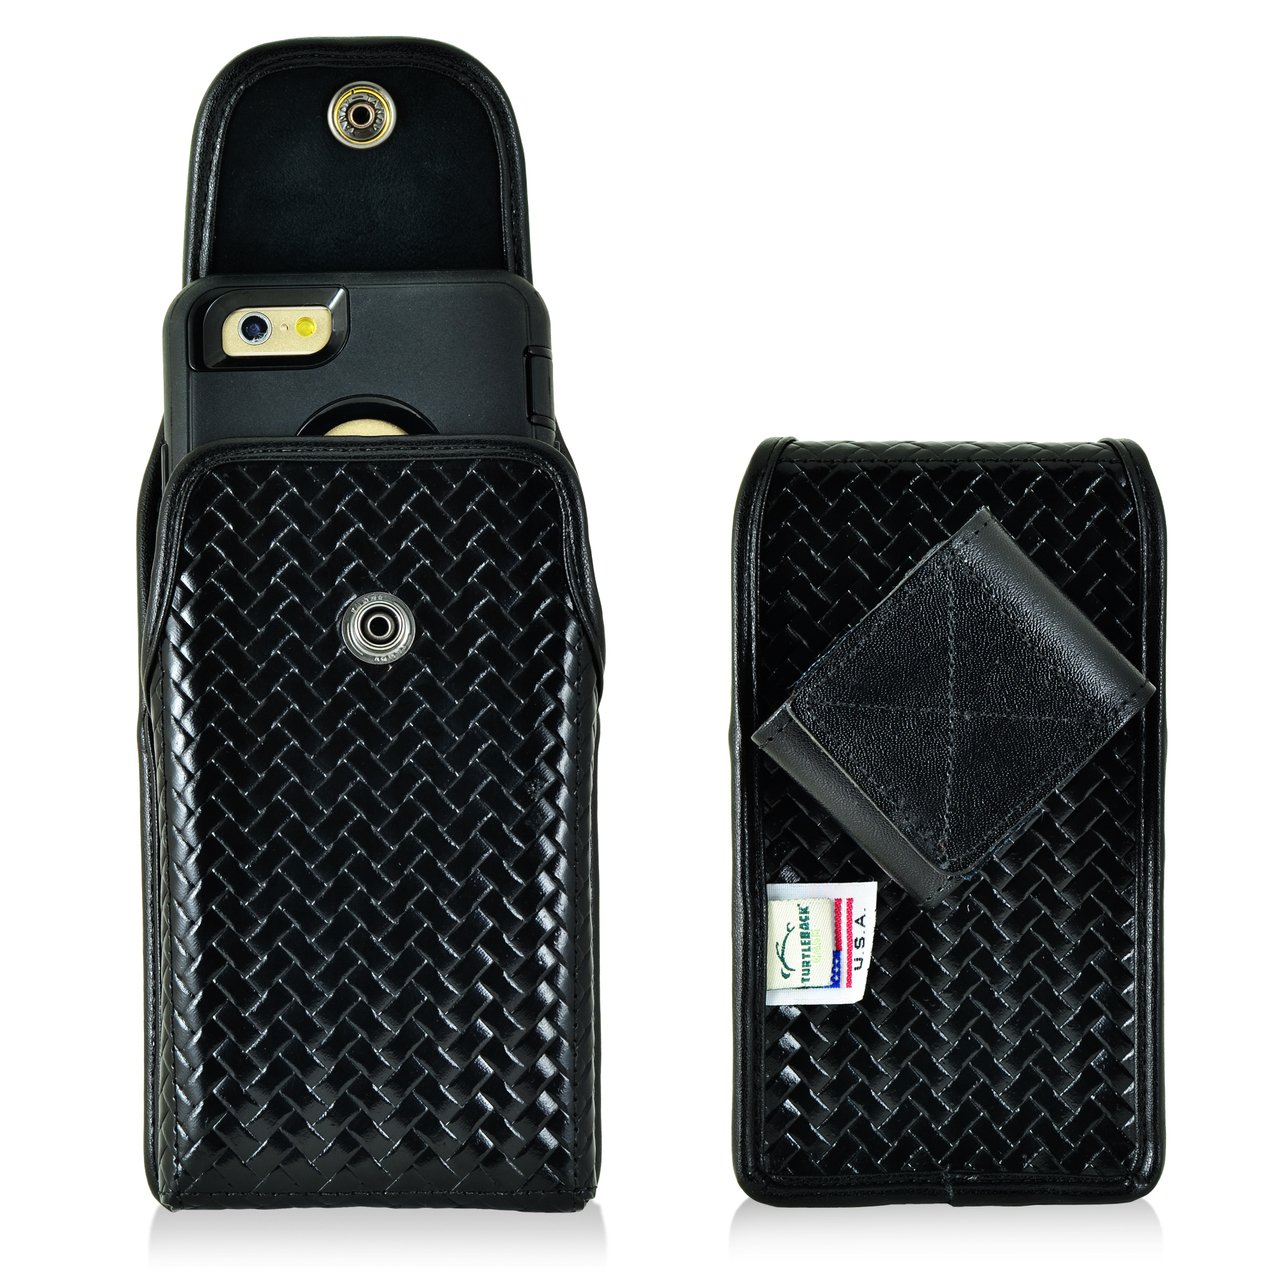 Genuine Leather Basket Weave Police Law Enforcement Case with Metal Rotating Belt Loop Clip and Snap Closure fits iPhone 7 with an Otterbox Defender case on it.